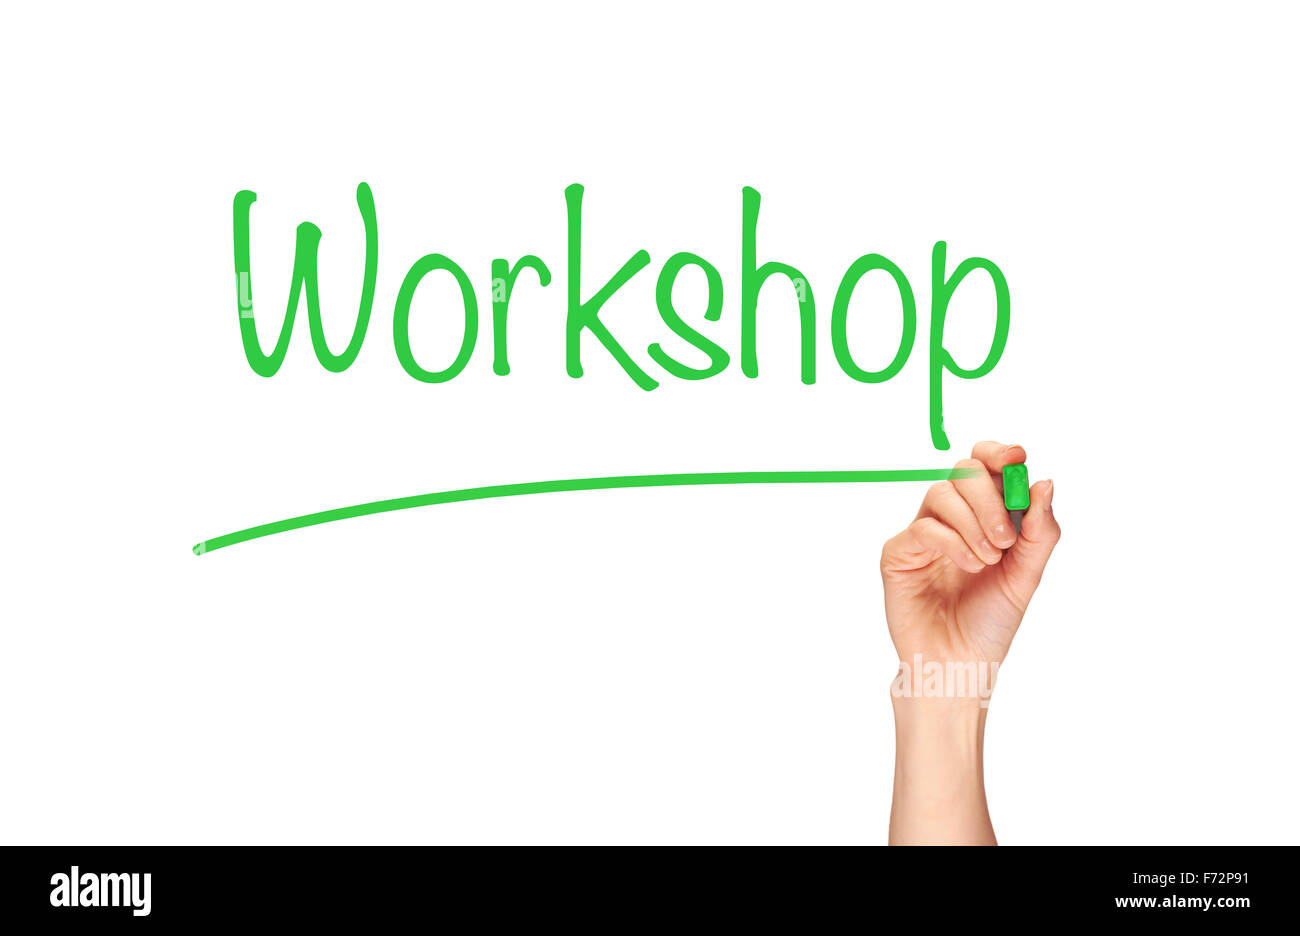 Workshop, written in marker on a clear screen. - Stock Image